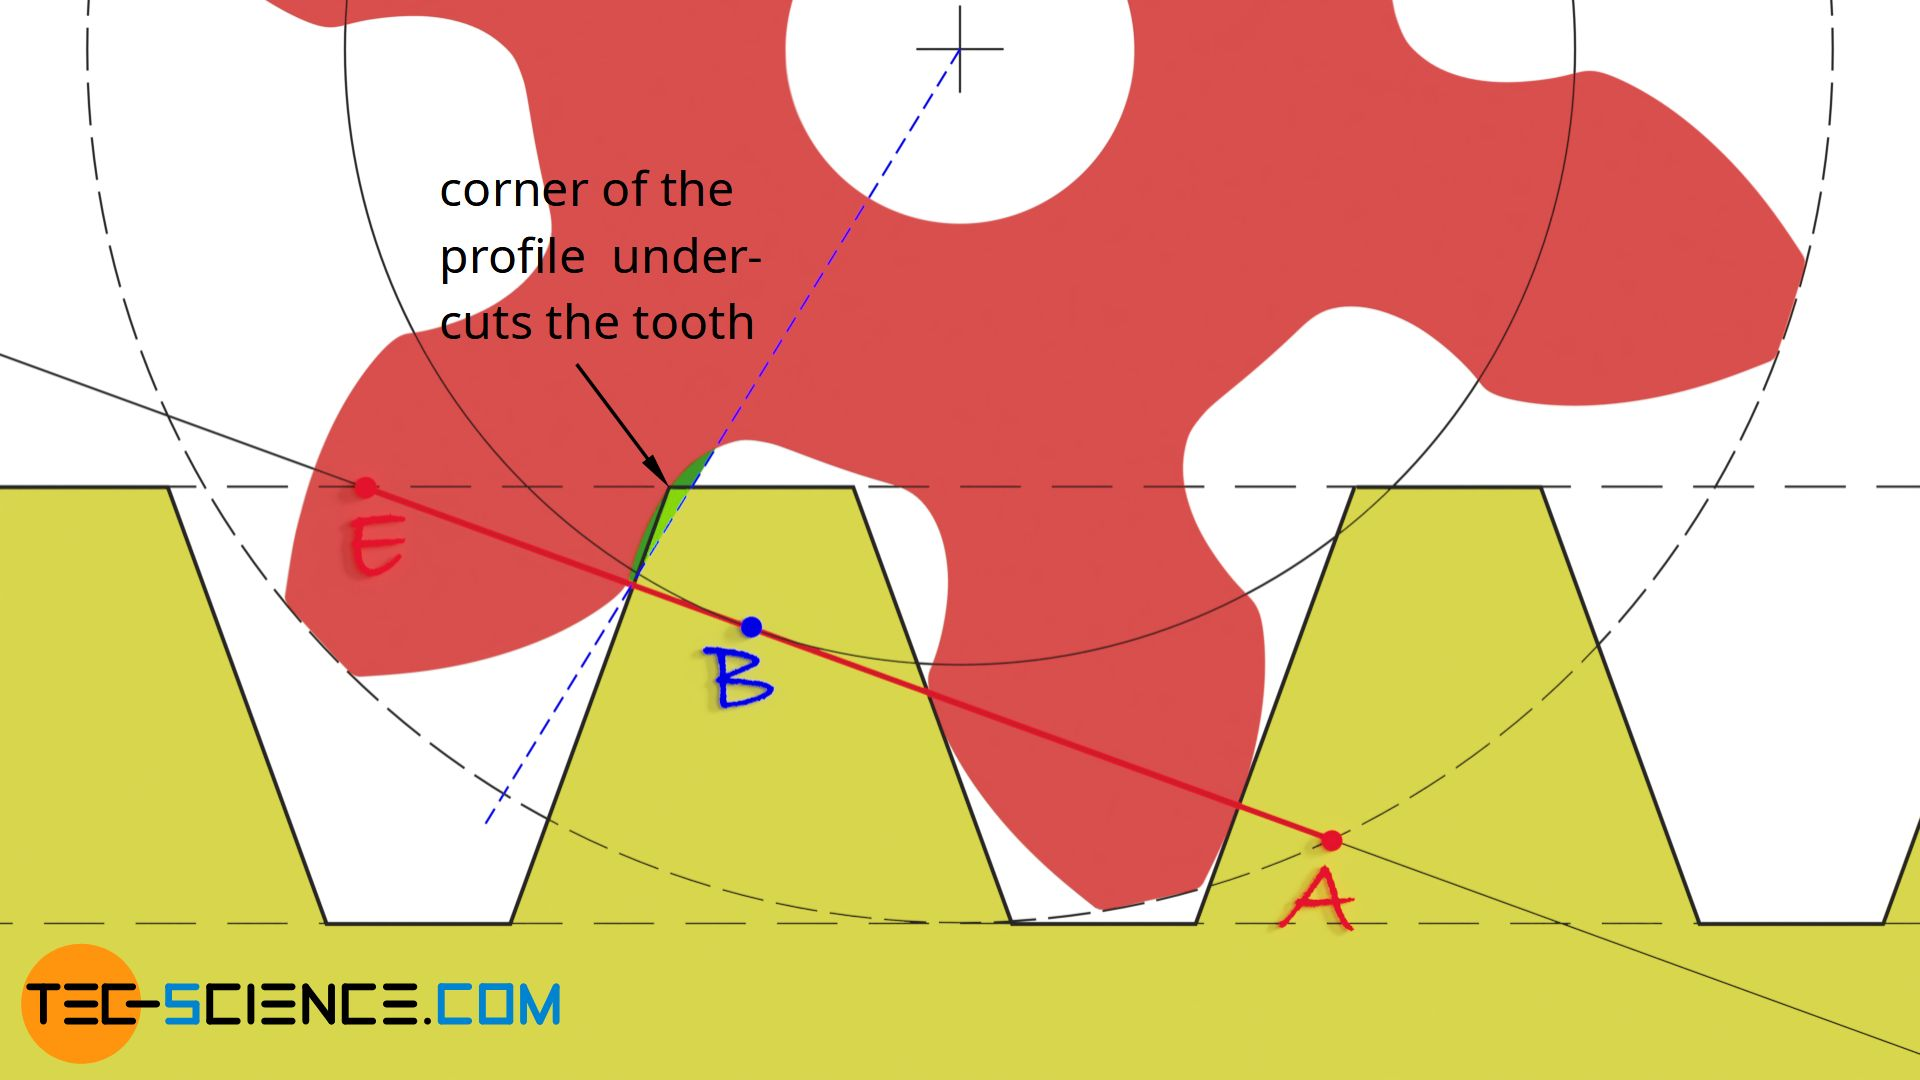 Profile corner cuts into the tooth root (undercut)